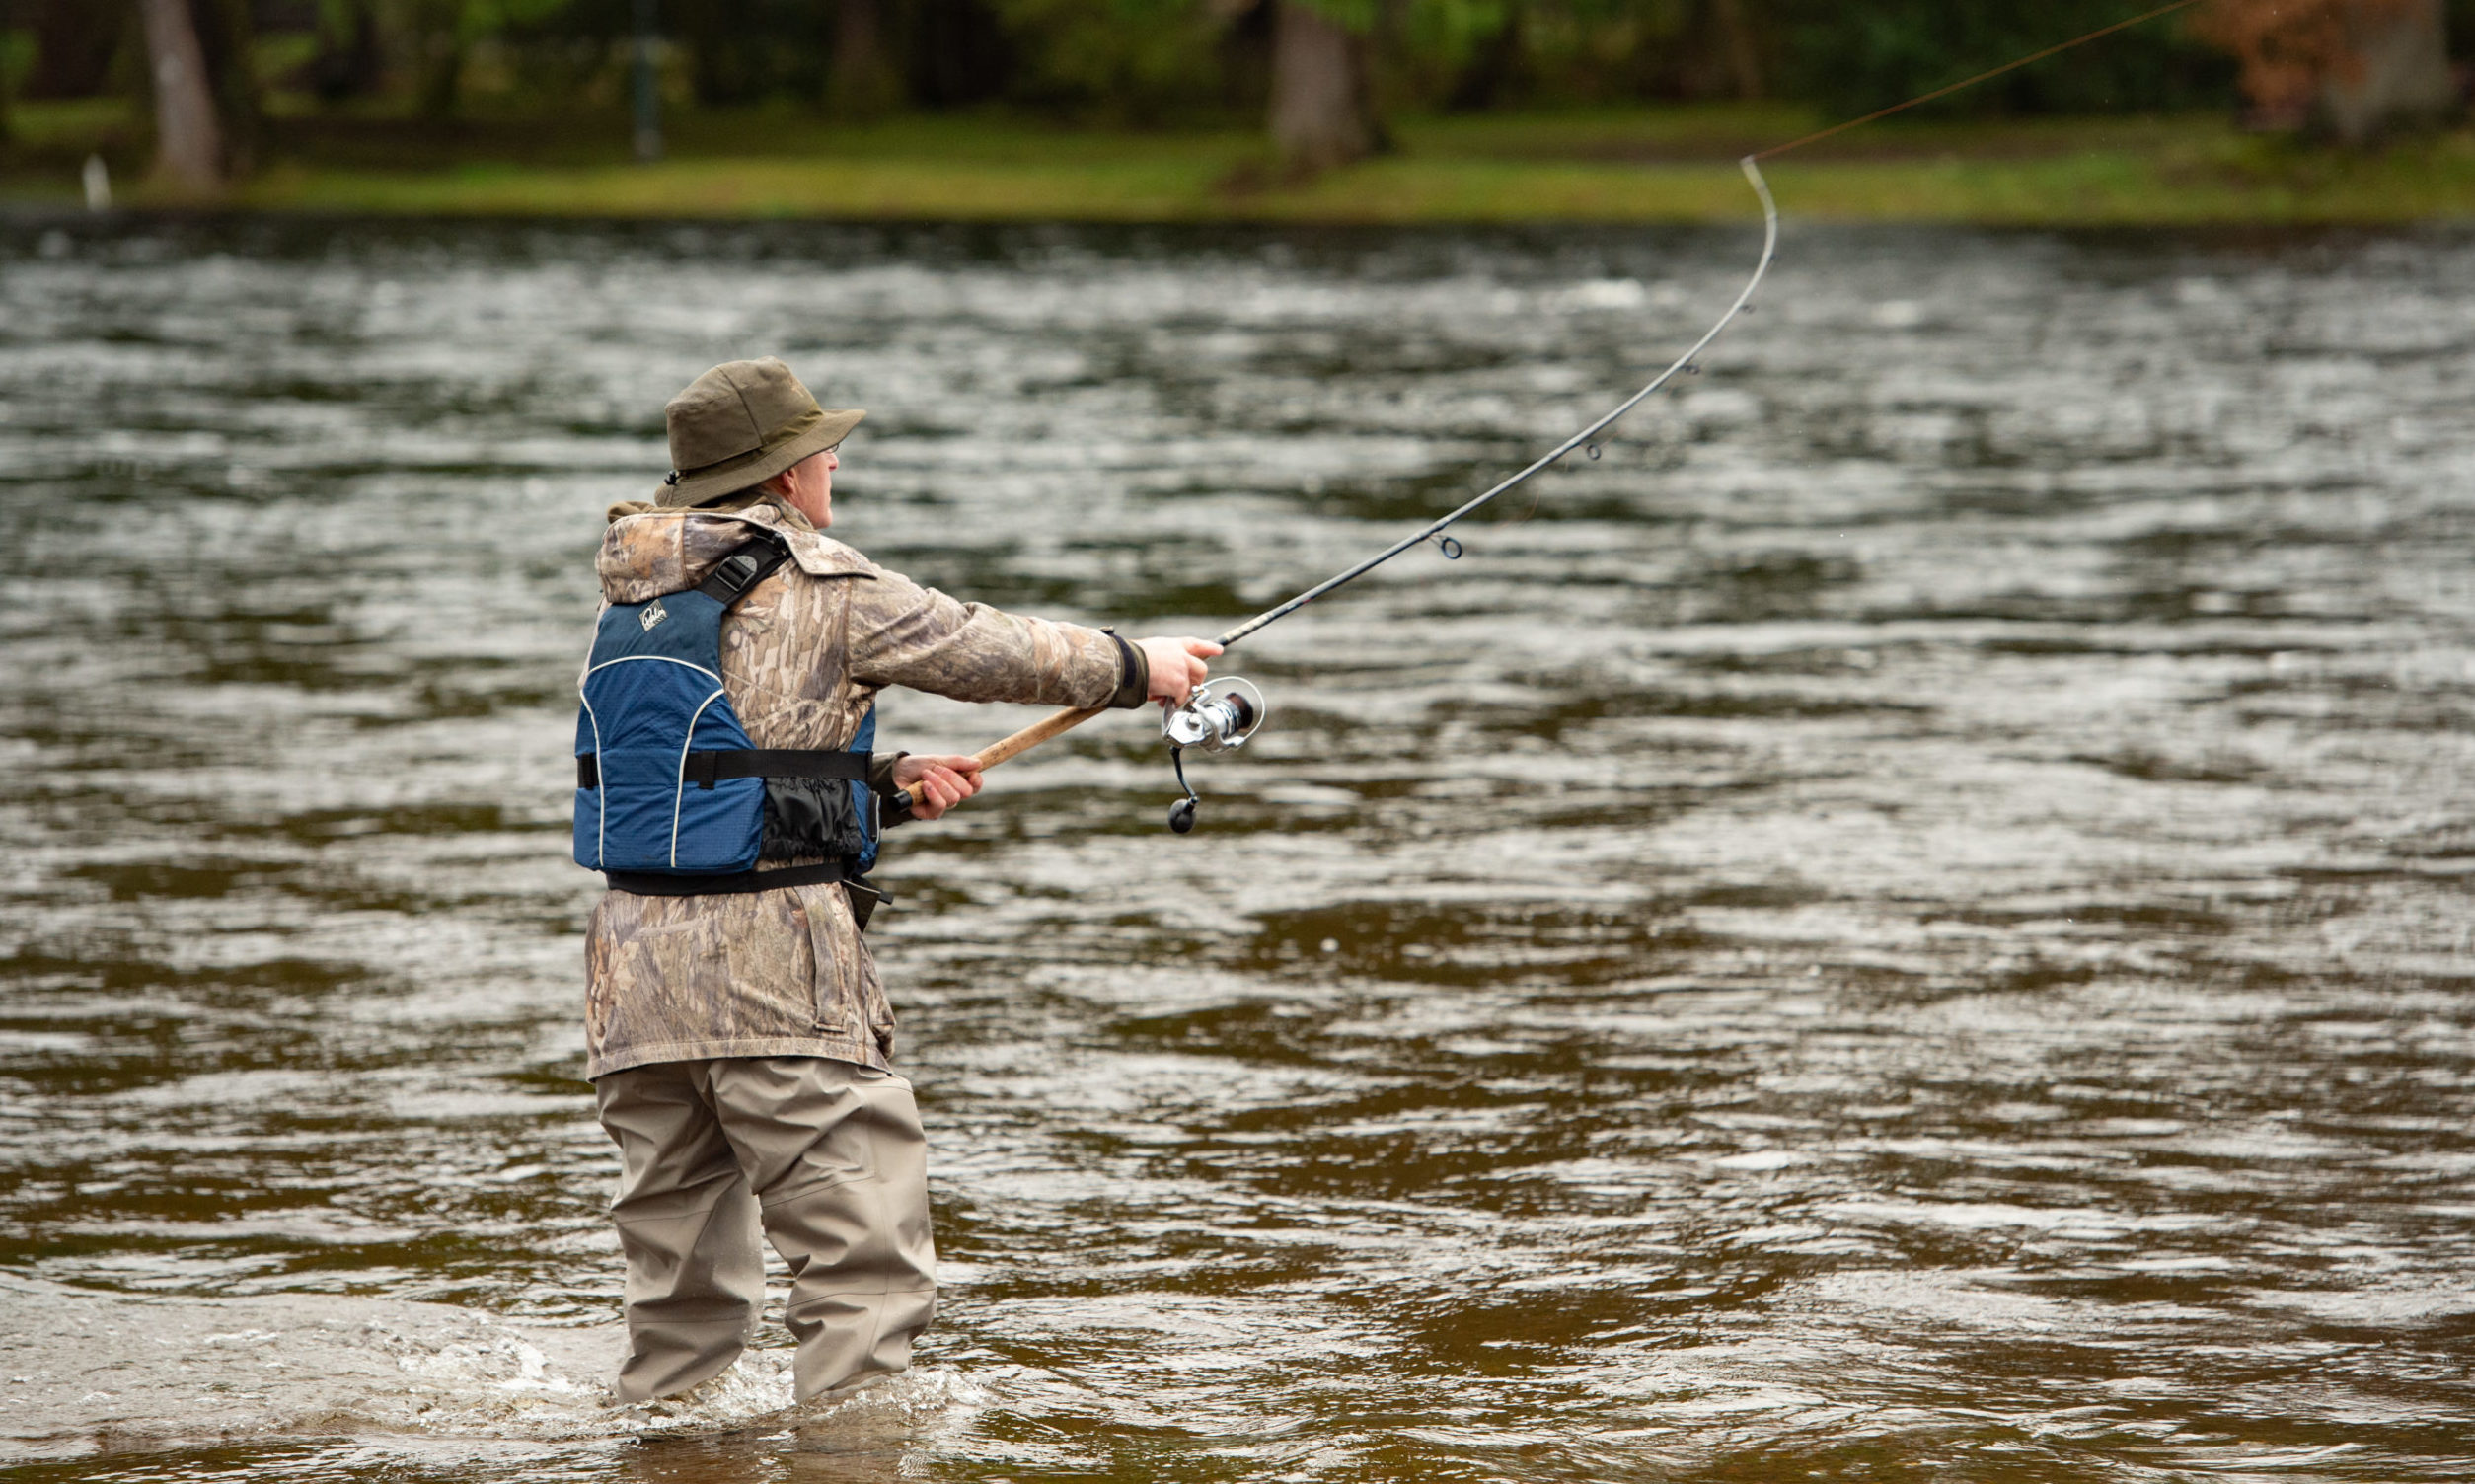 An angler on the River Ness. Picture by Jason Hedges